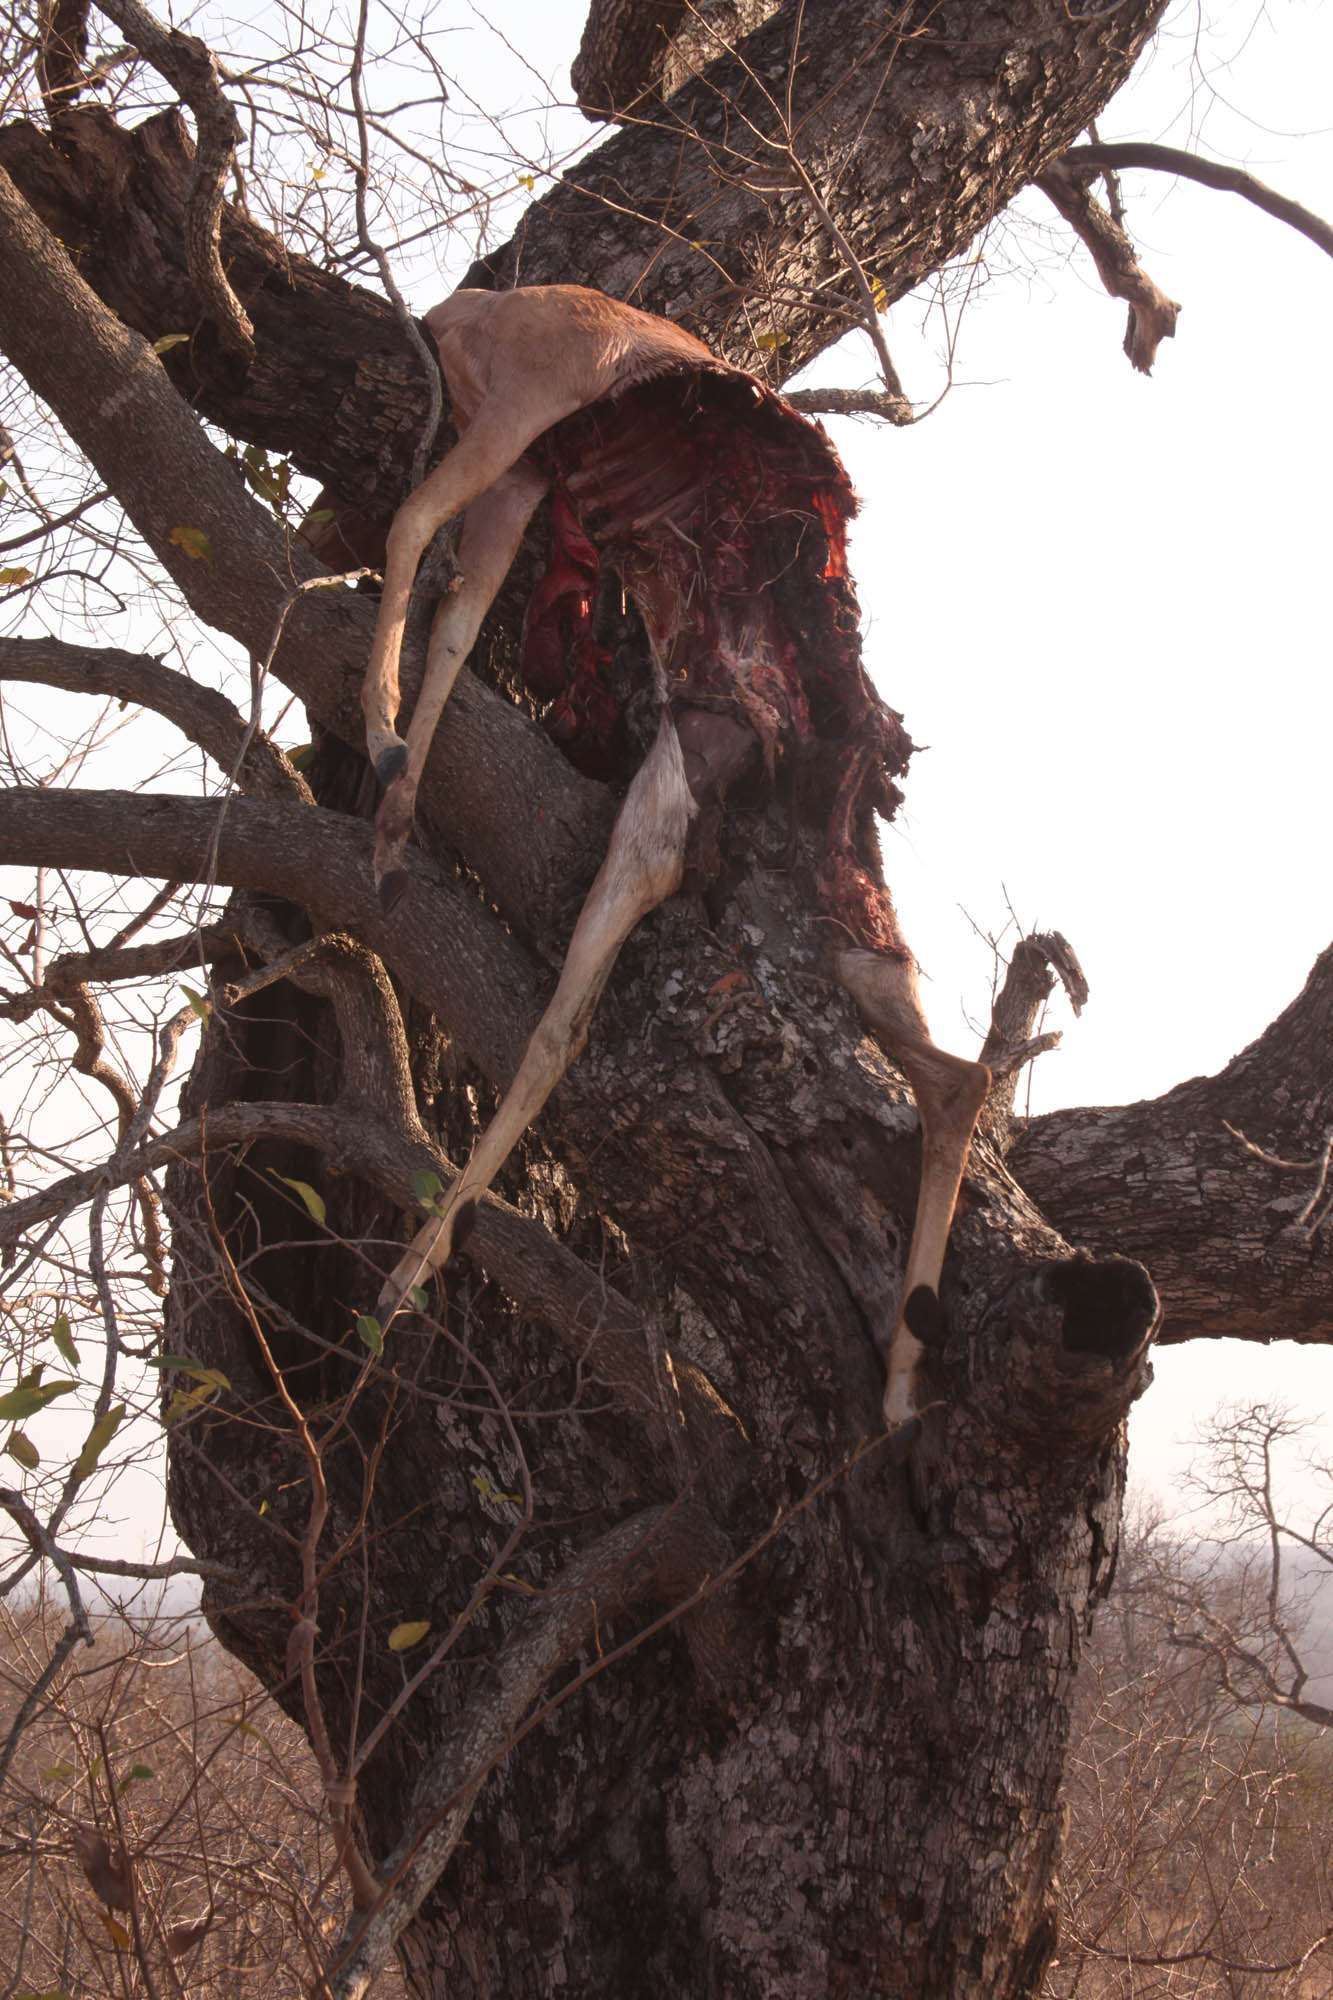 Carcass in a tree